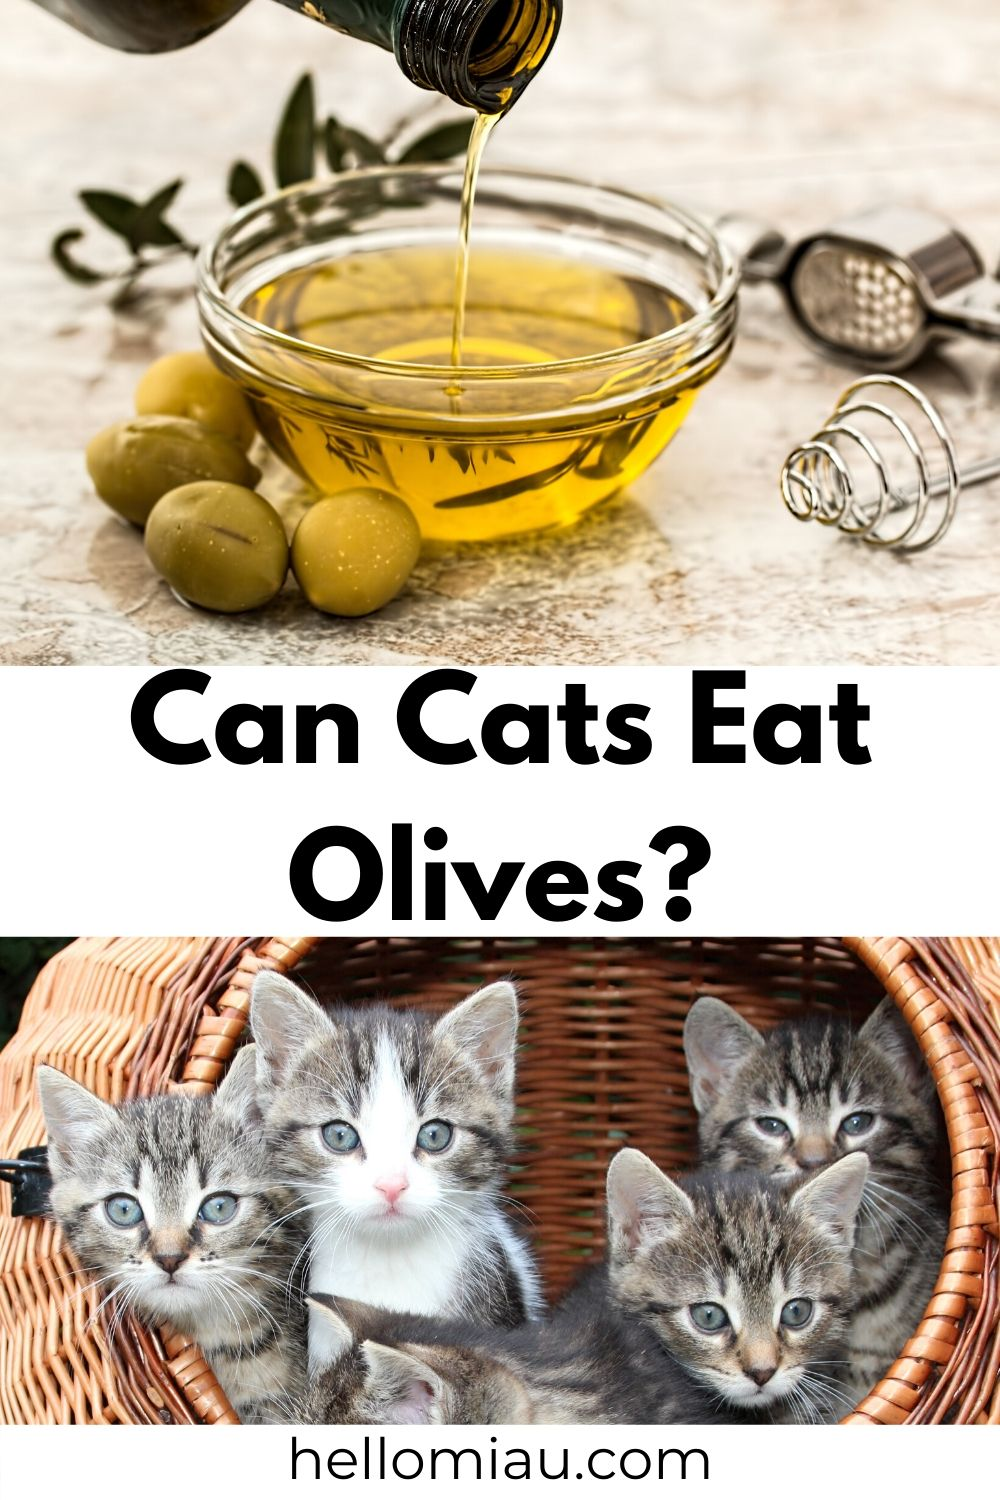 Can Cats Eat Olives?